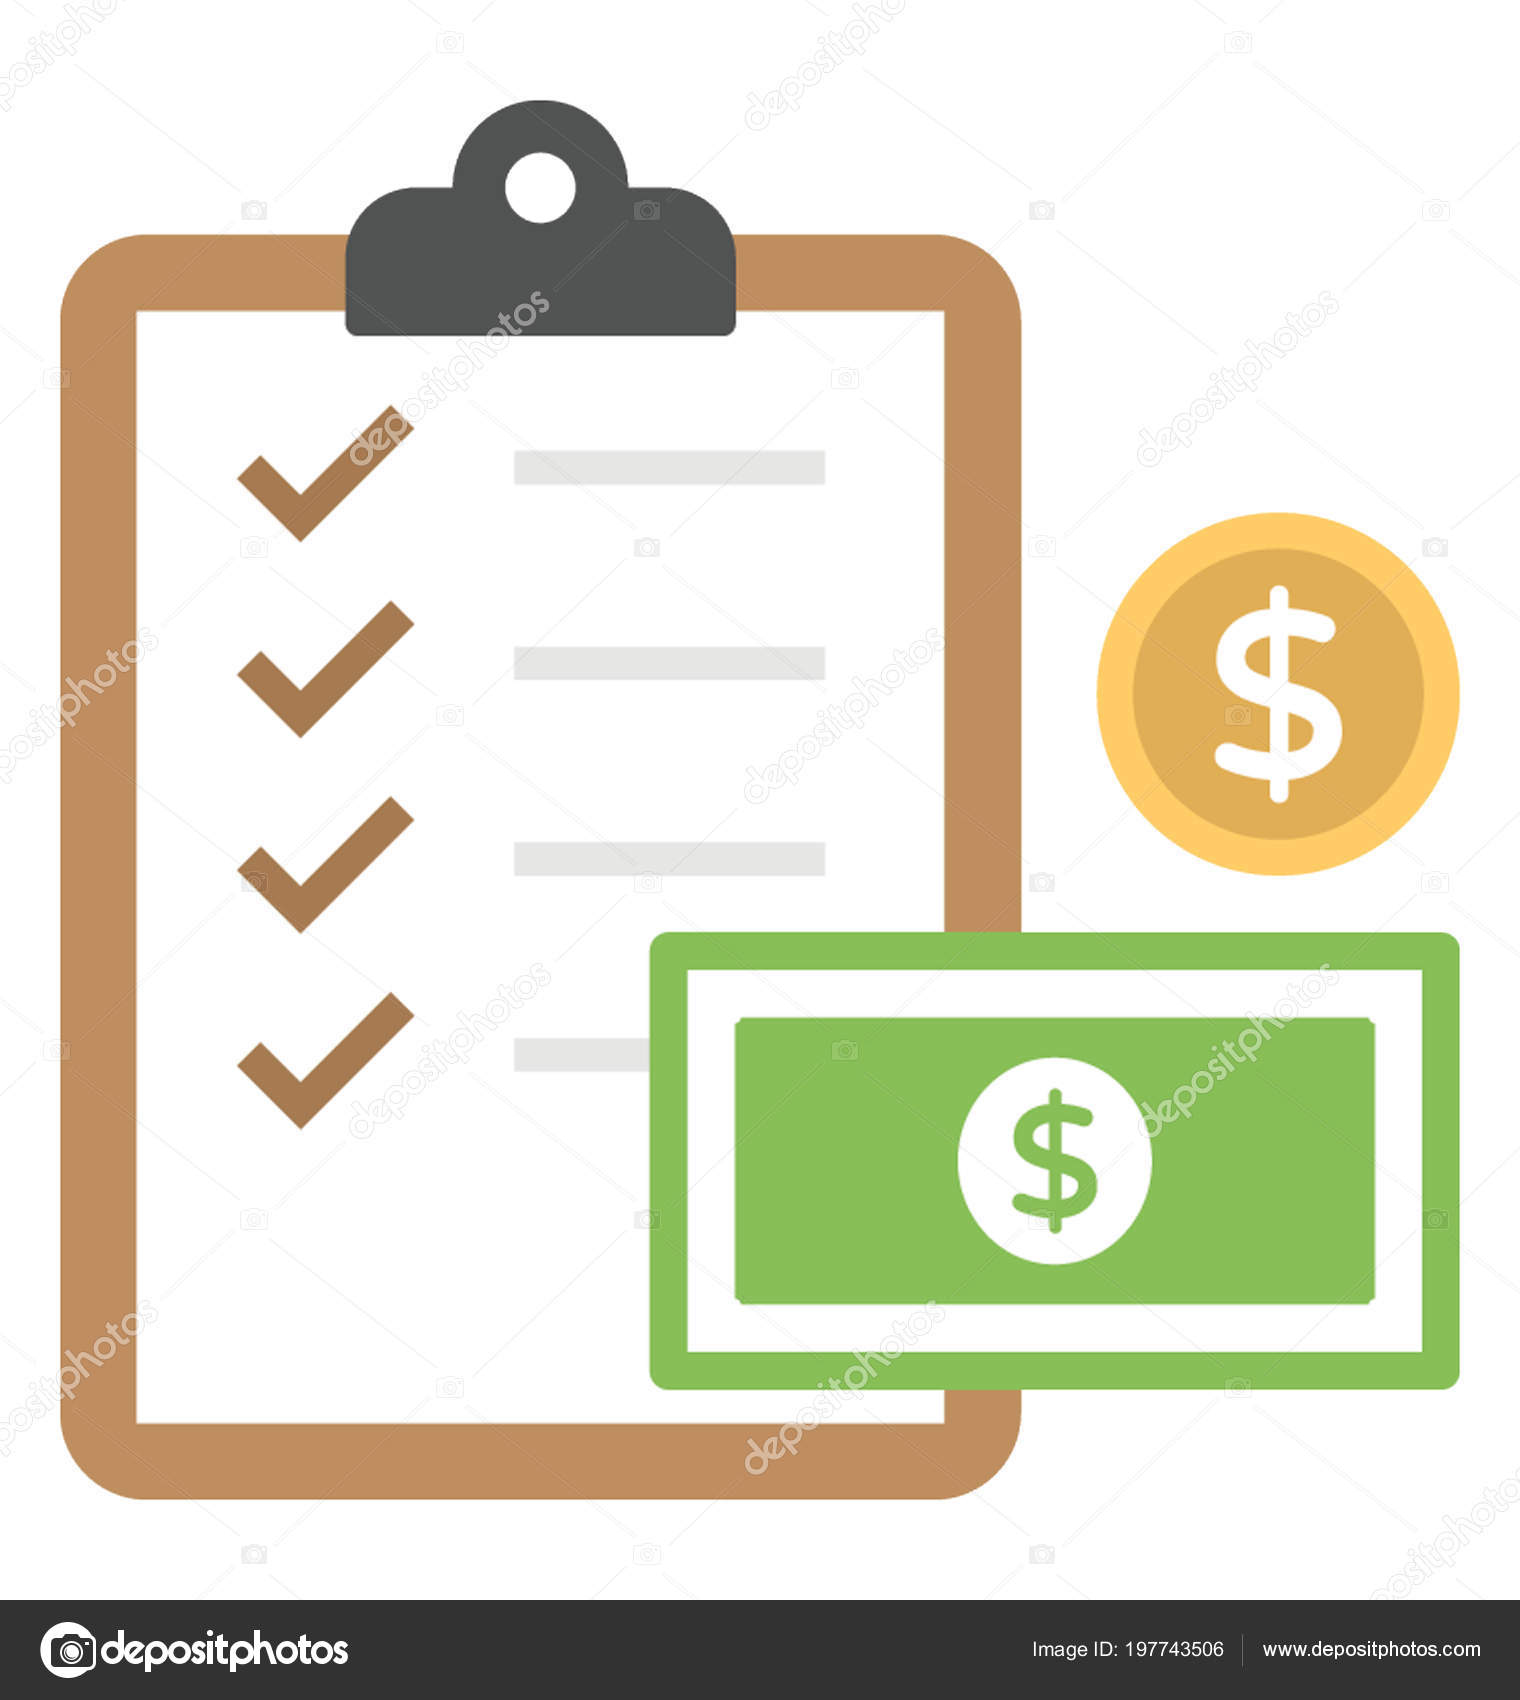 clipboard checklist depicts financial planning activity task